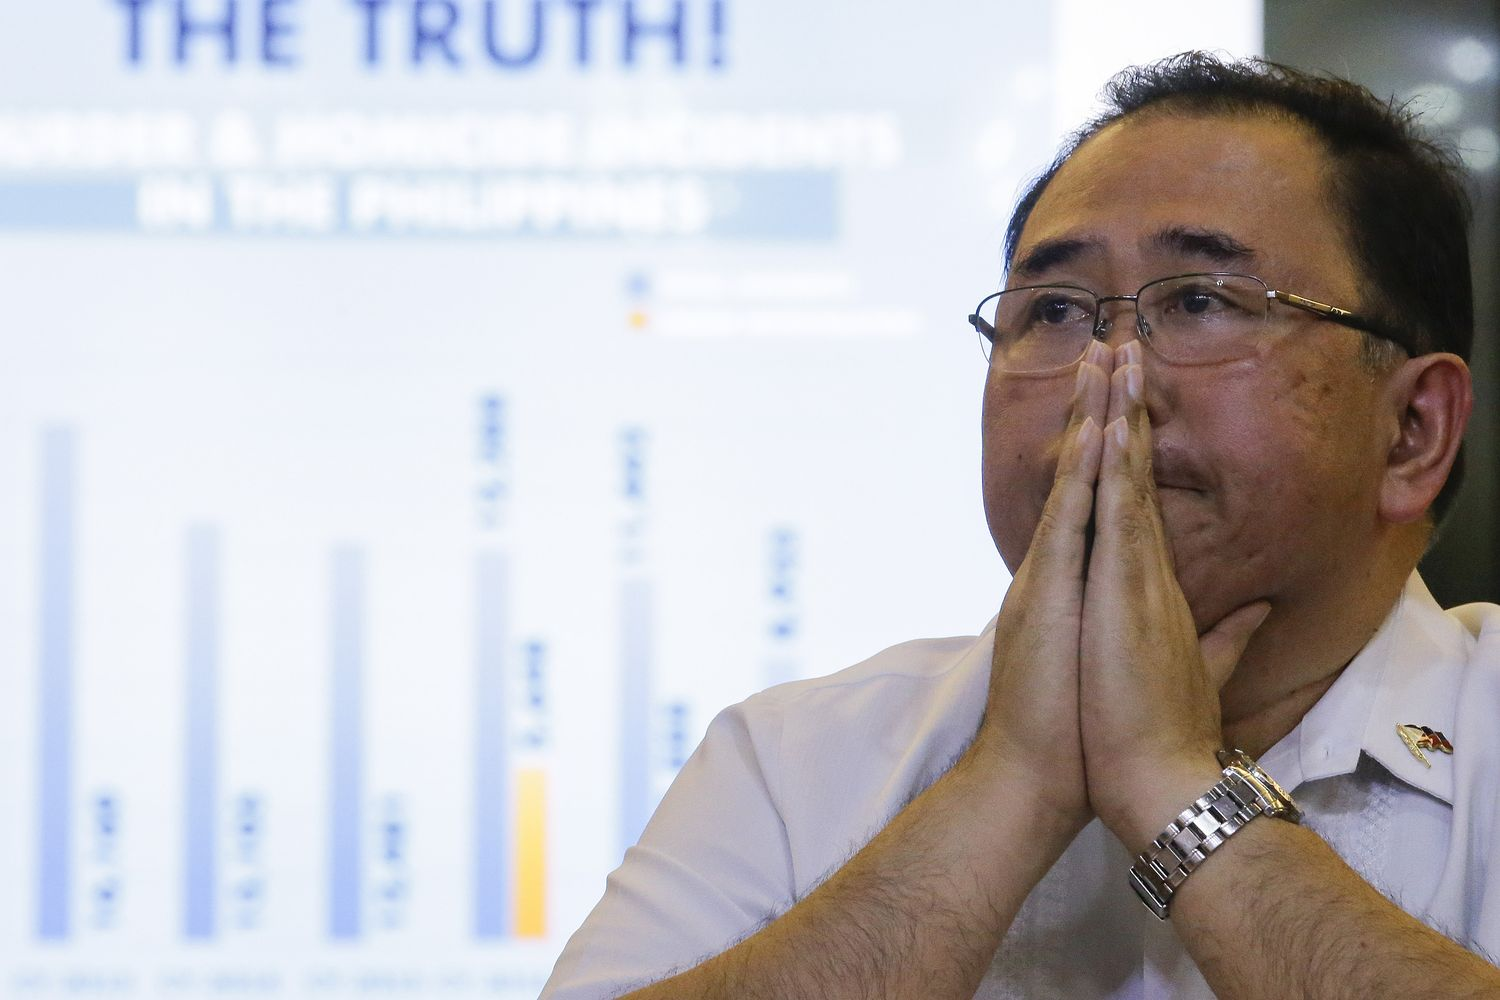 Undersecretary Severo Catura, executive director of the Presidential Human Rights Committee secretariat, gestures as he listens to questions from reporters during a news conference in metropolitan Manila, Philippines, on Thursday. (AP photo)